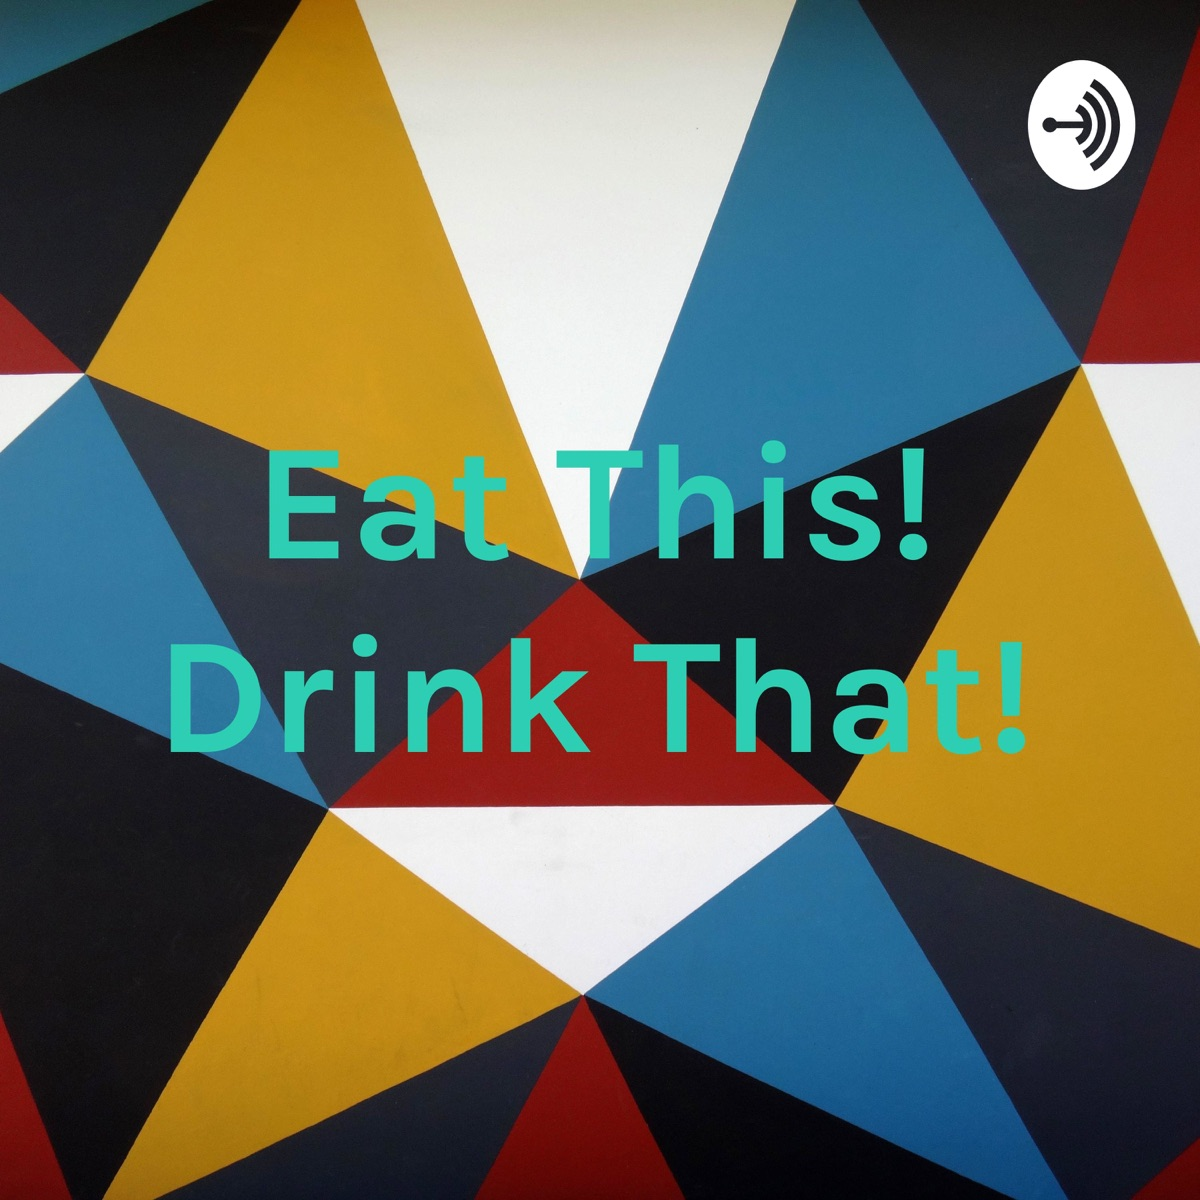 Eat This! Drink That!